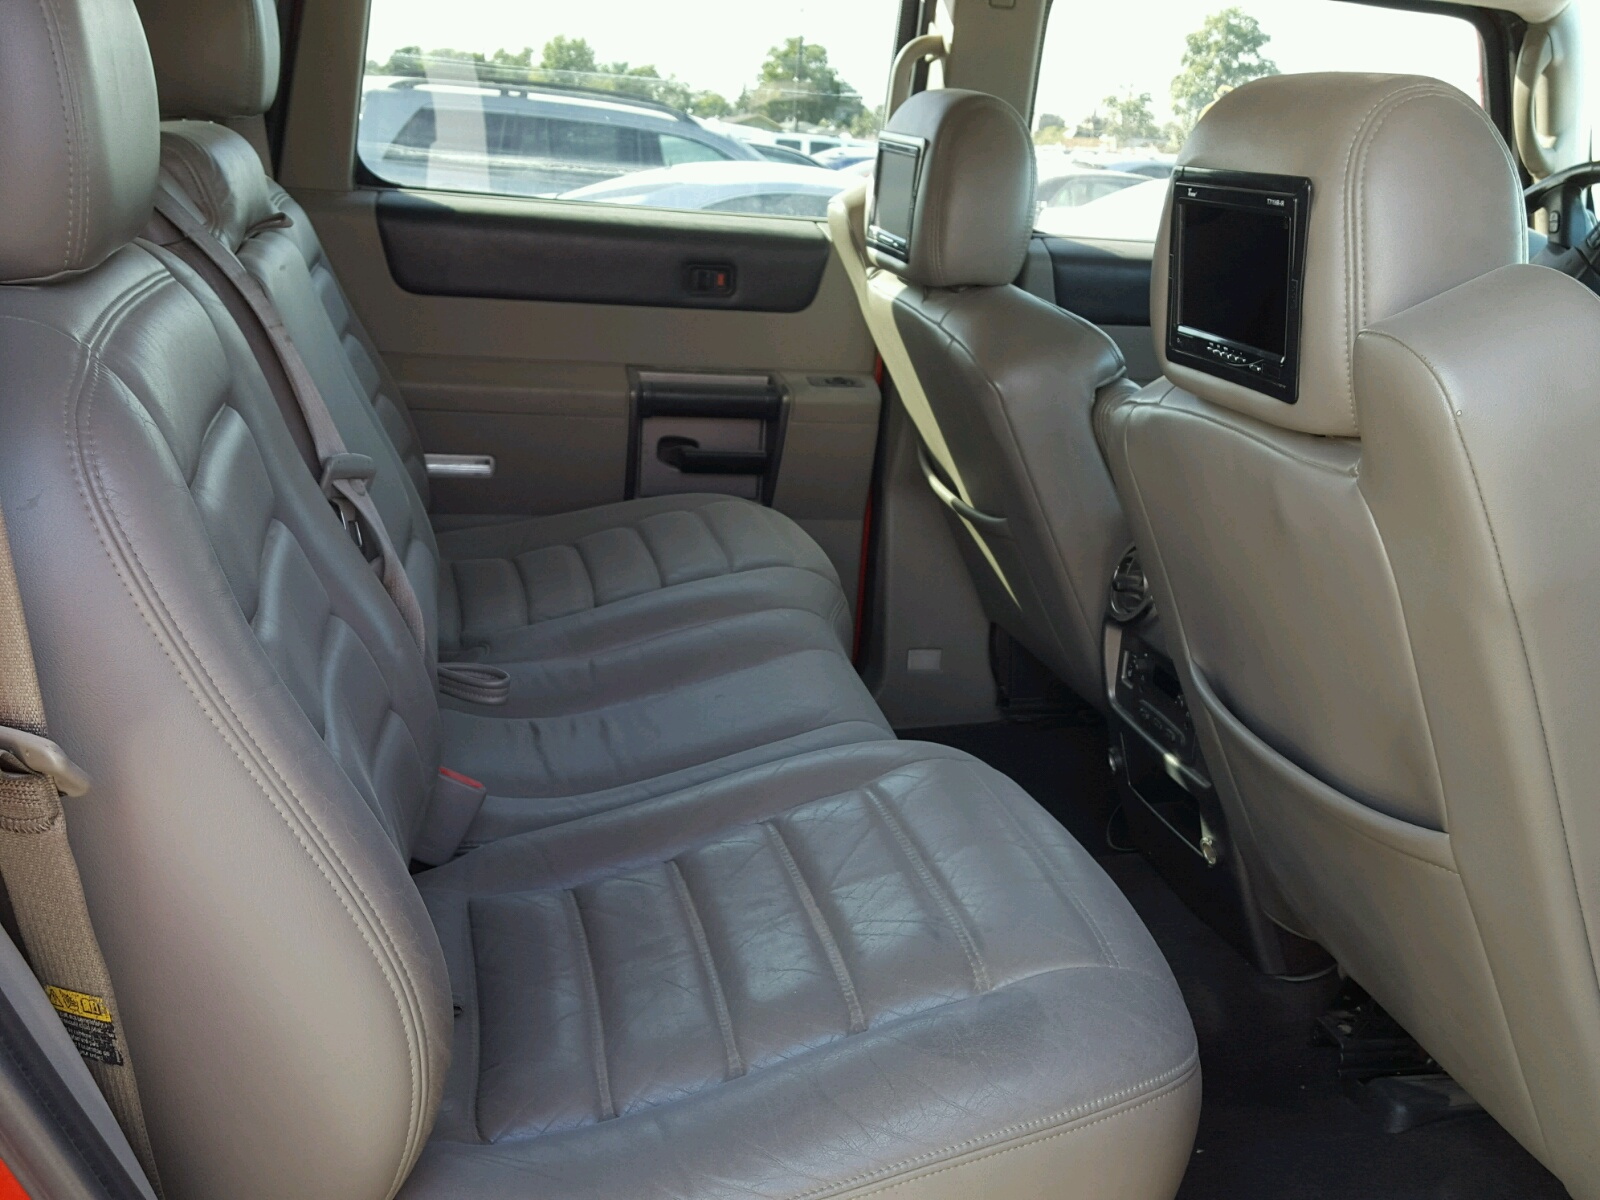 Elegant Hummer H2 for Sale In Houston Honda Civic and Accord